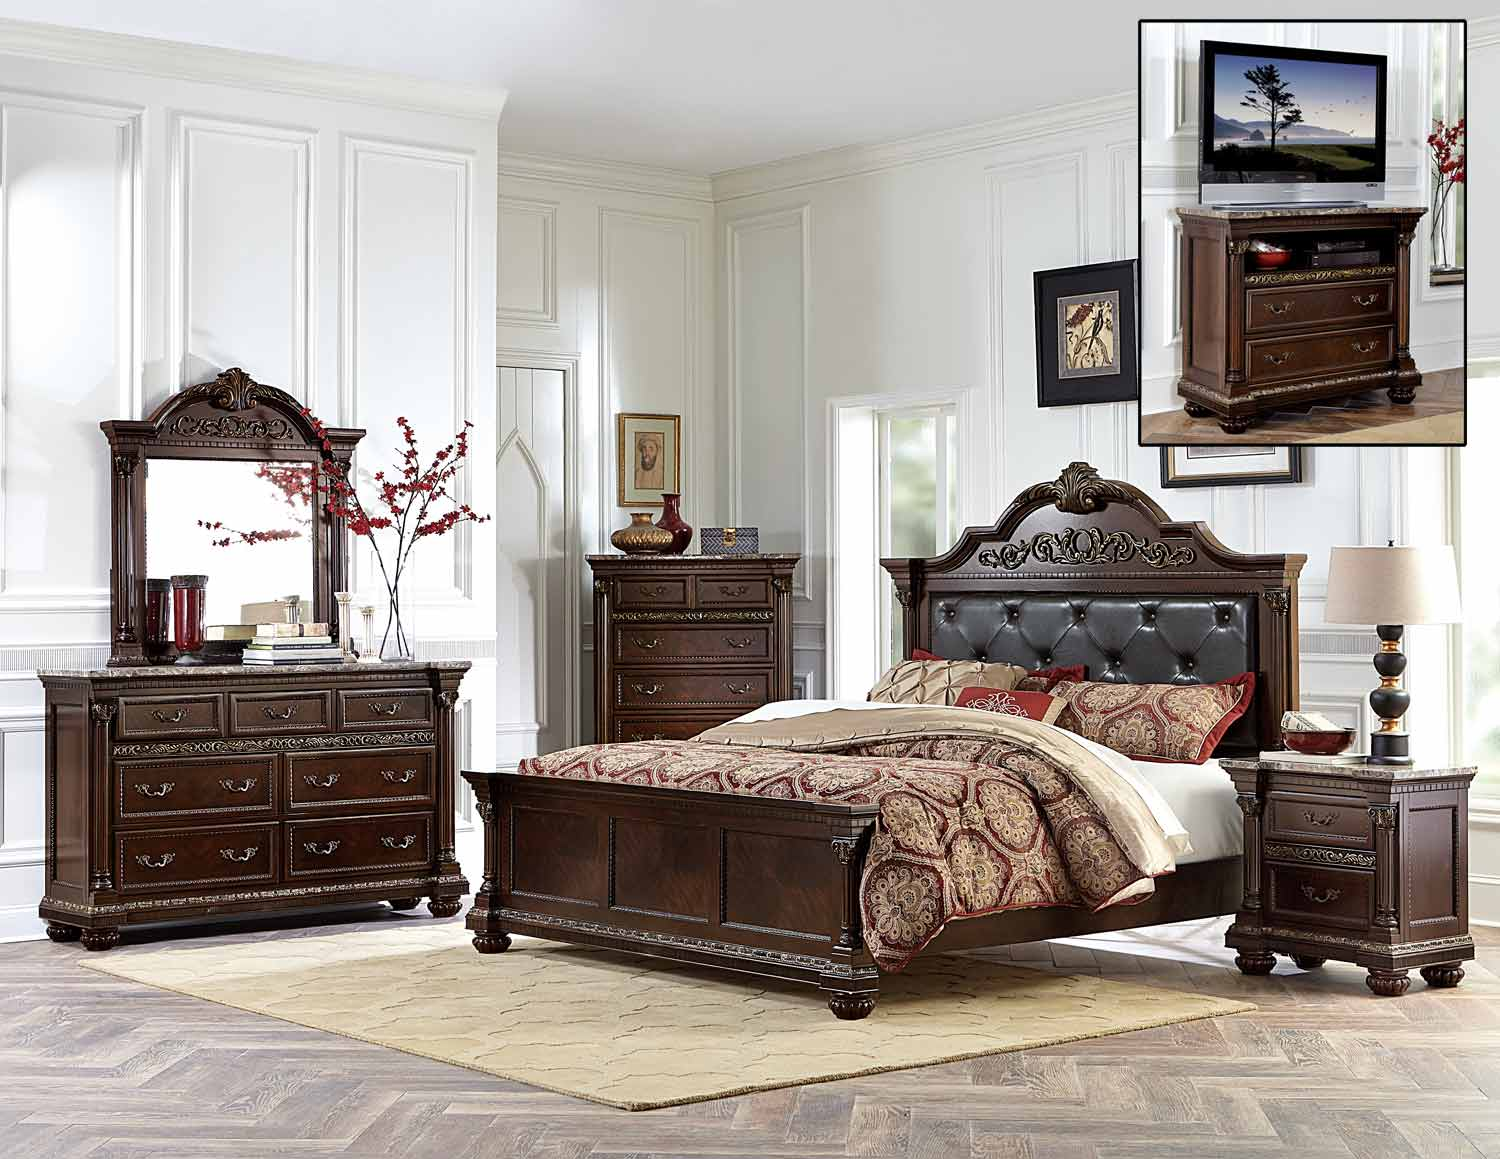 Homelegance Russian Hill Bedroom Set - Warm Cherry